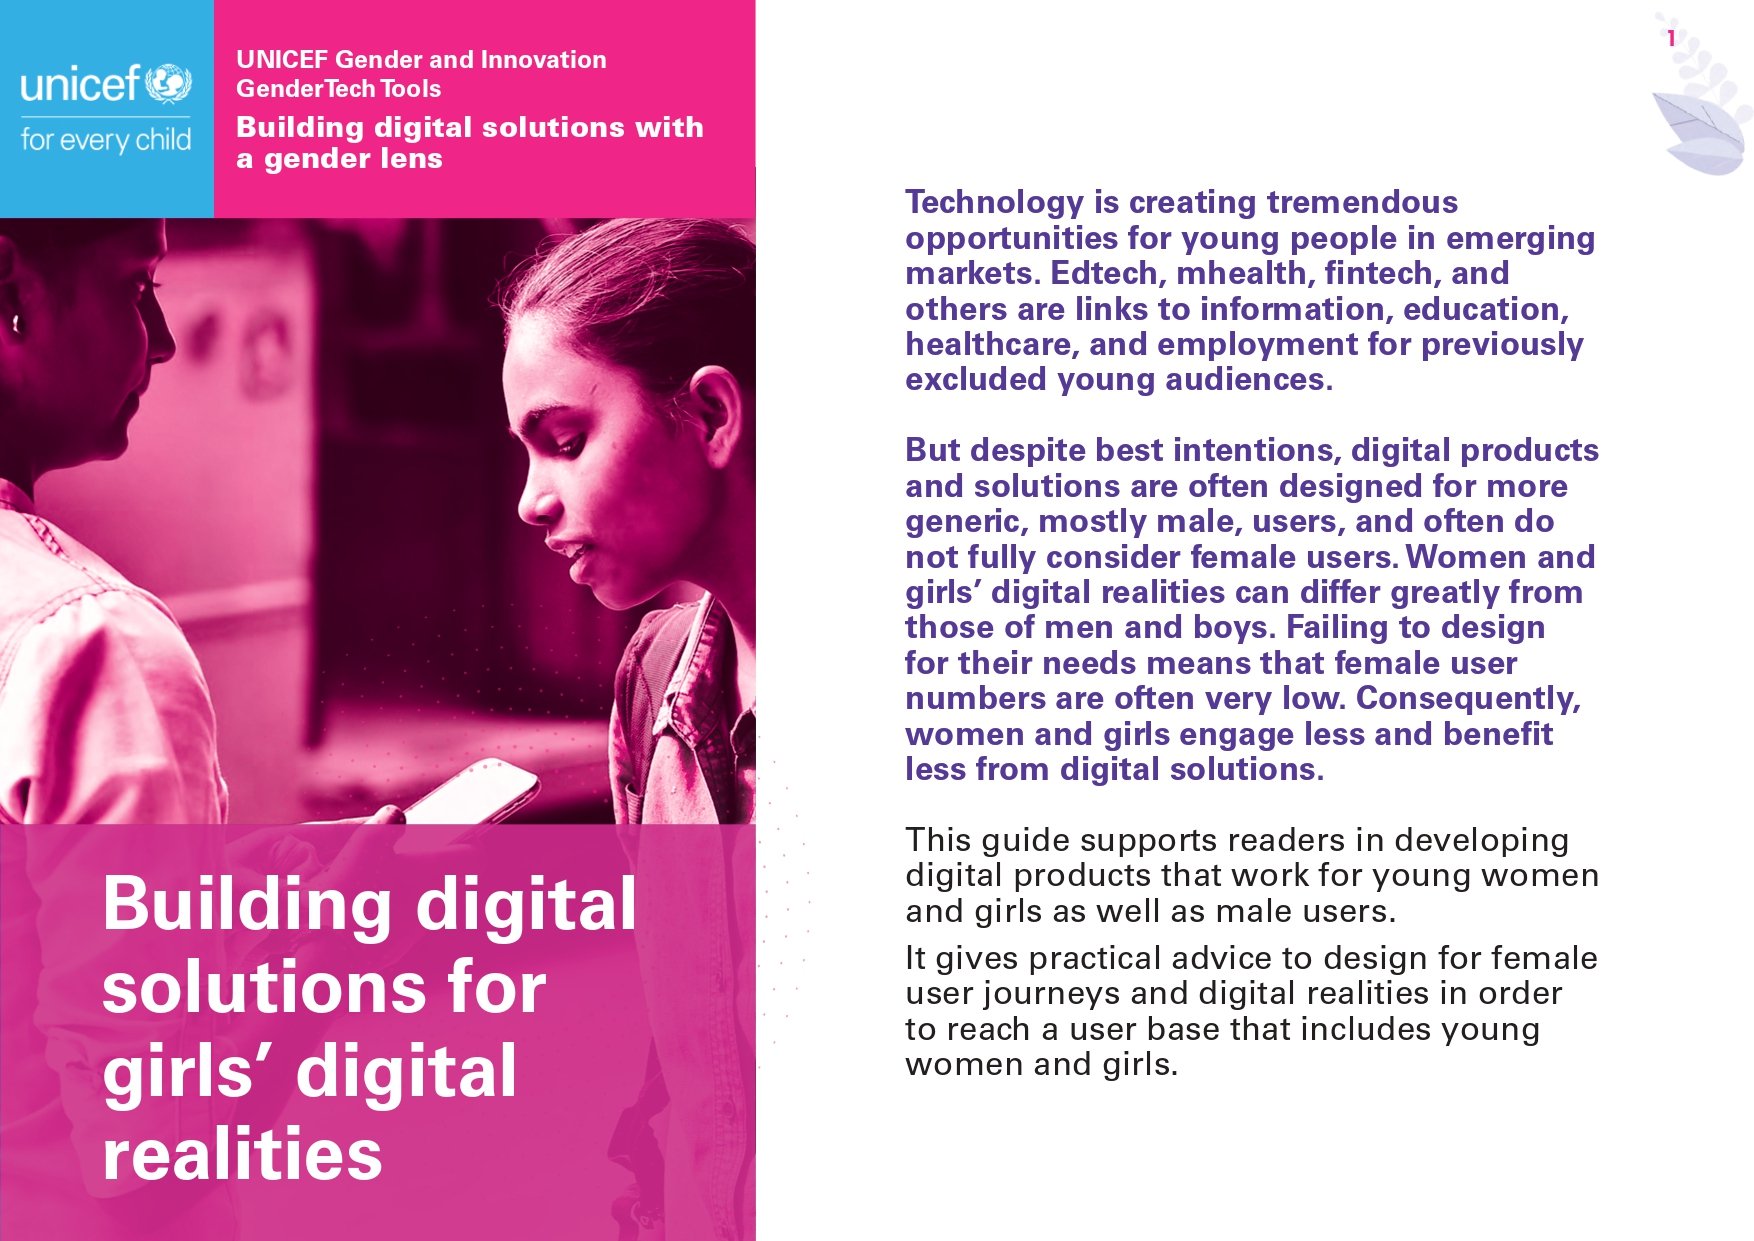 Building digital solutions for girls' digital realities